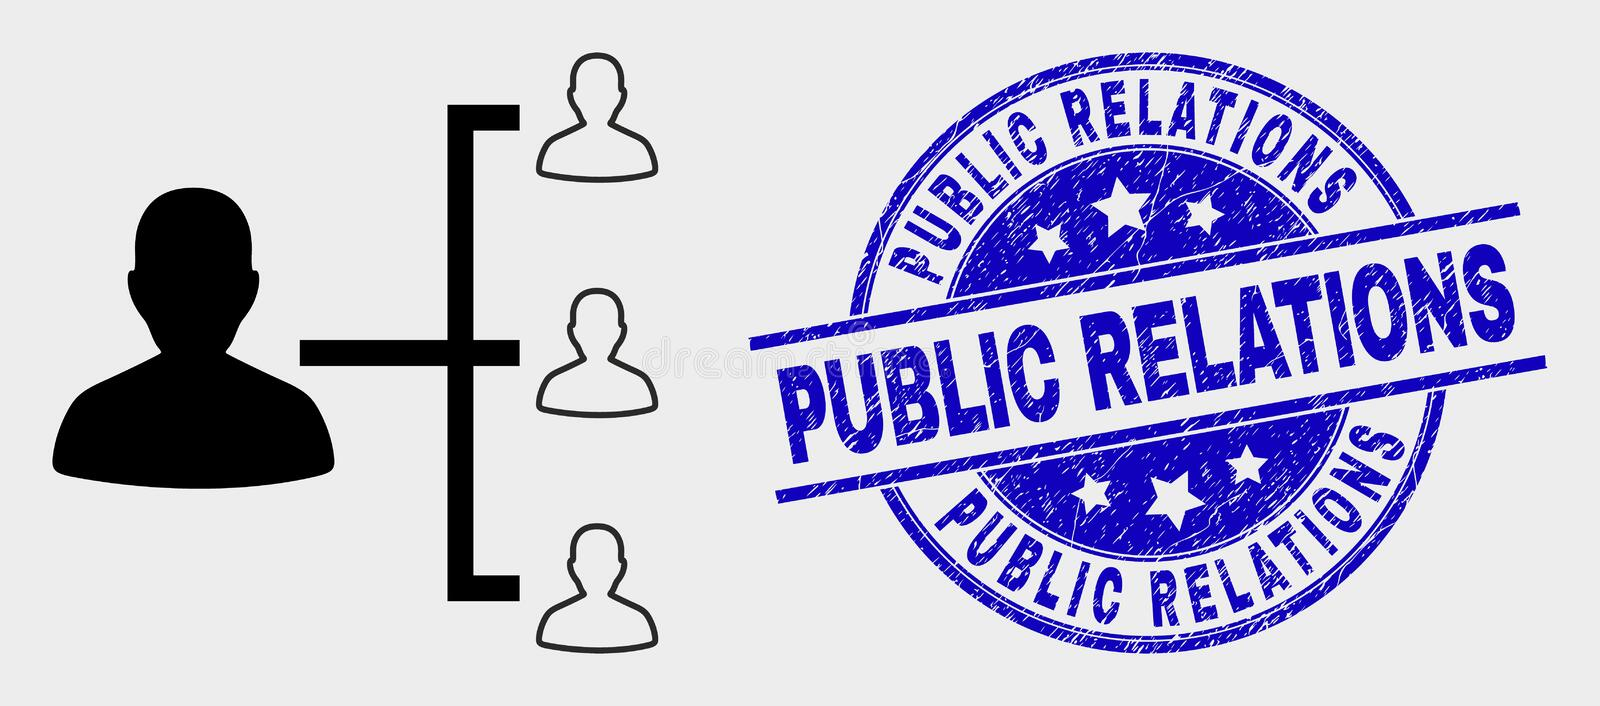 Vector People Hierarchy Icon and Grunge Public Relations Stamp royalty free illustration